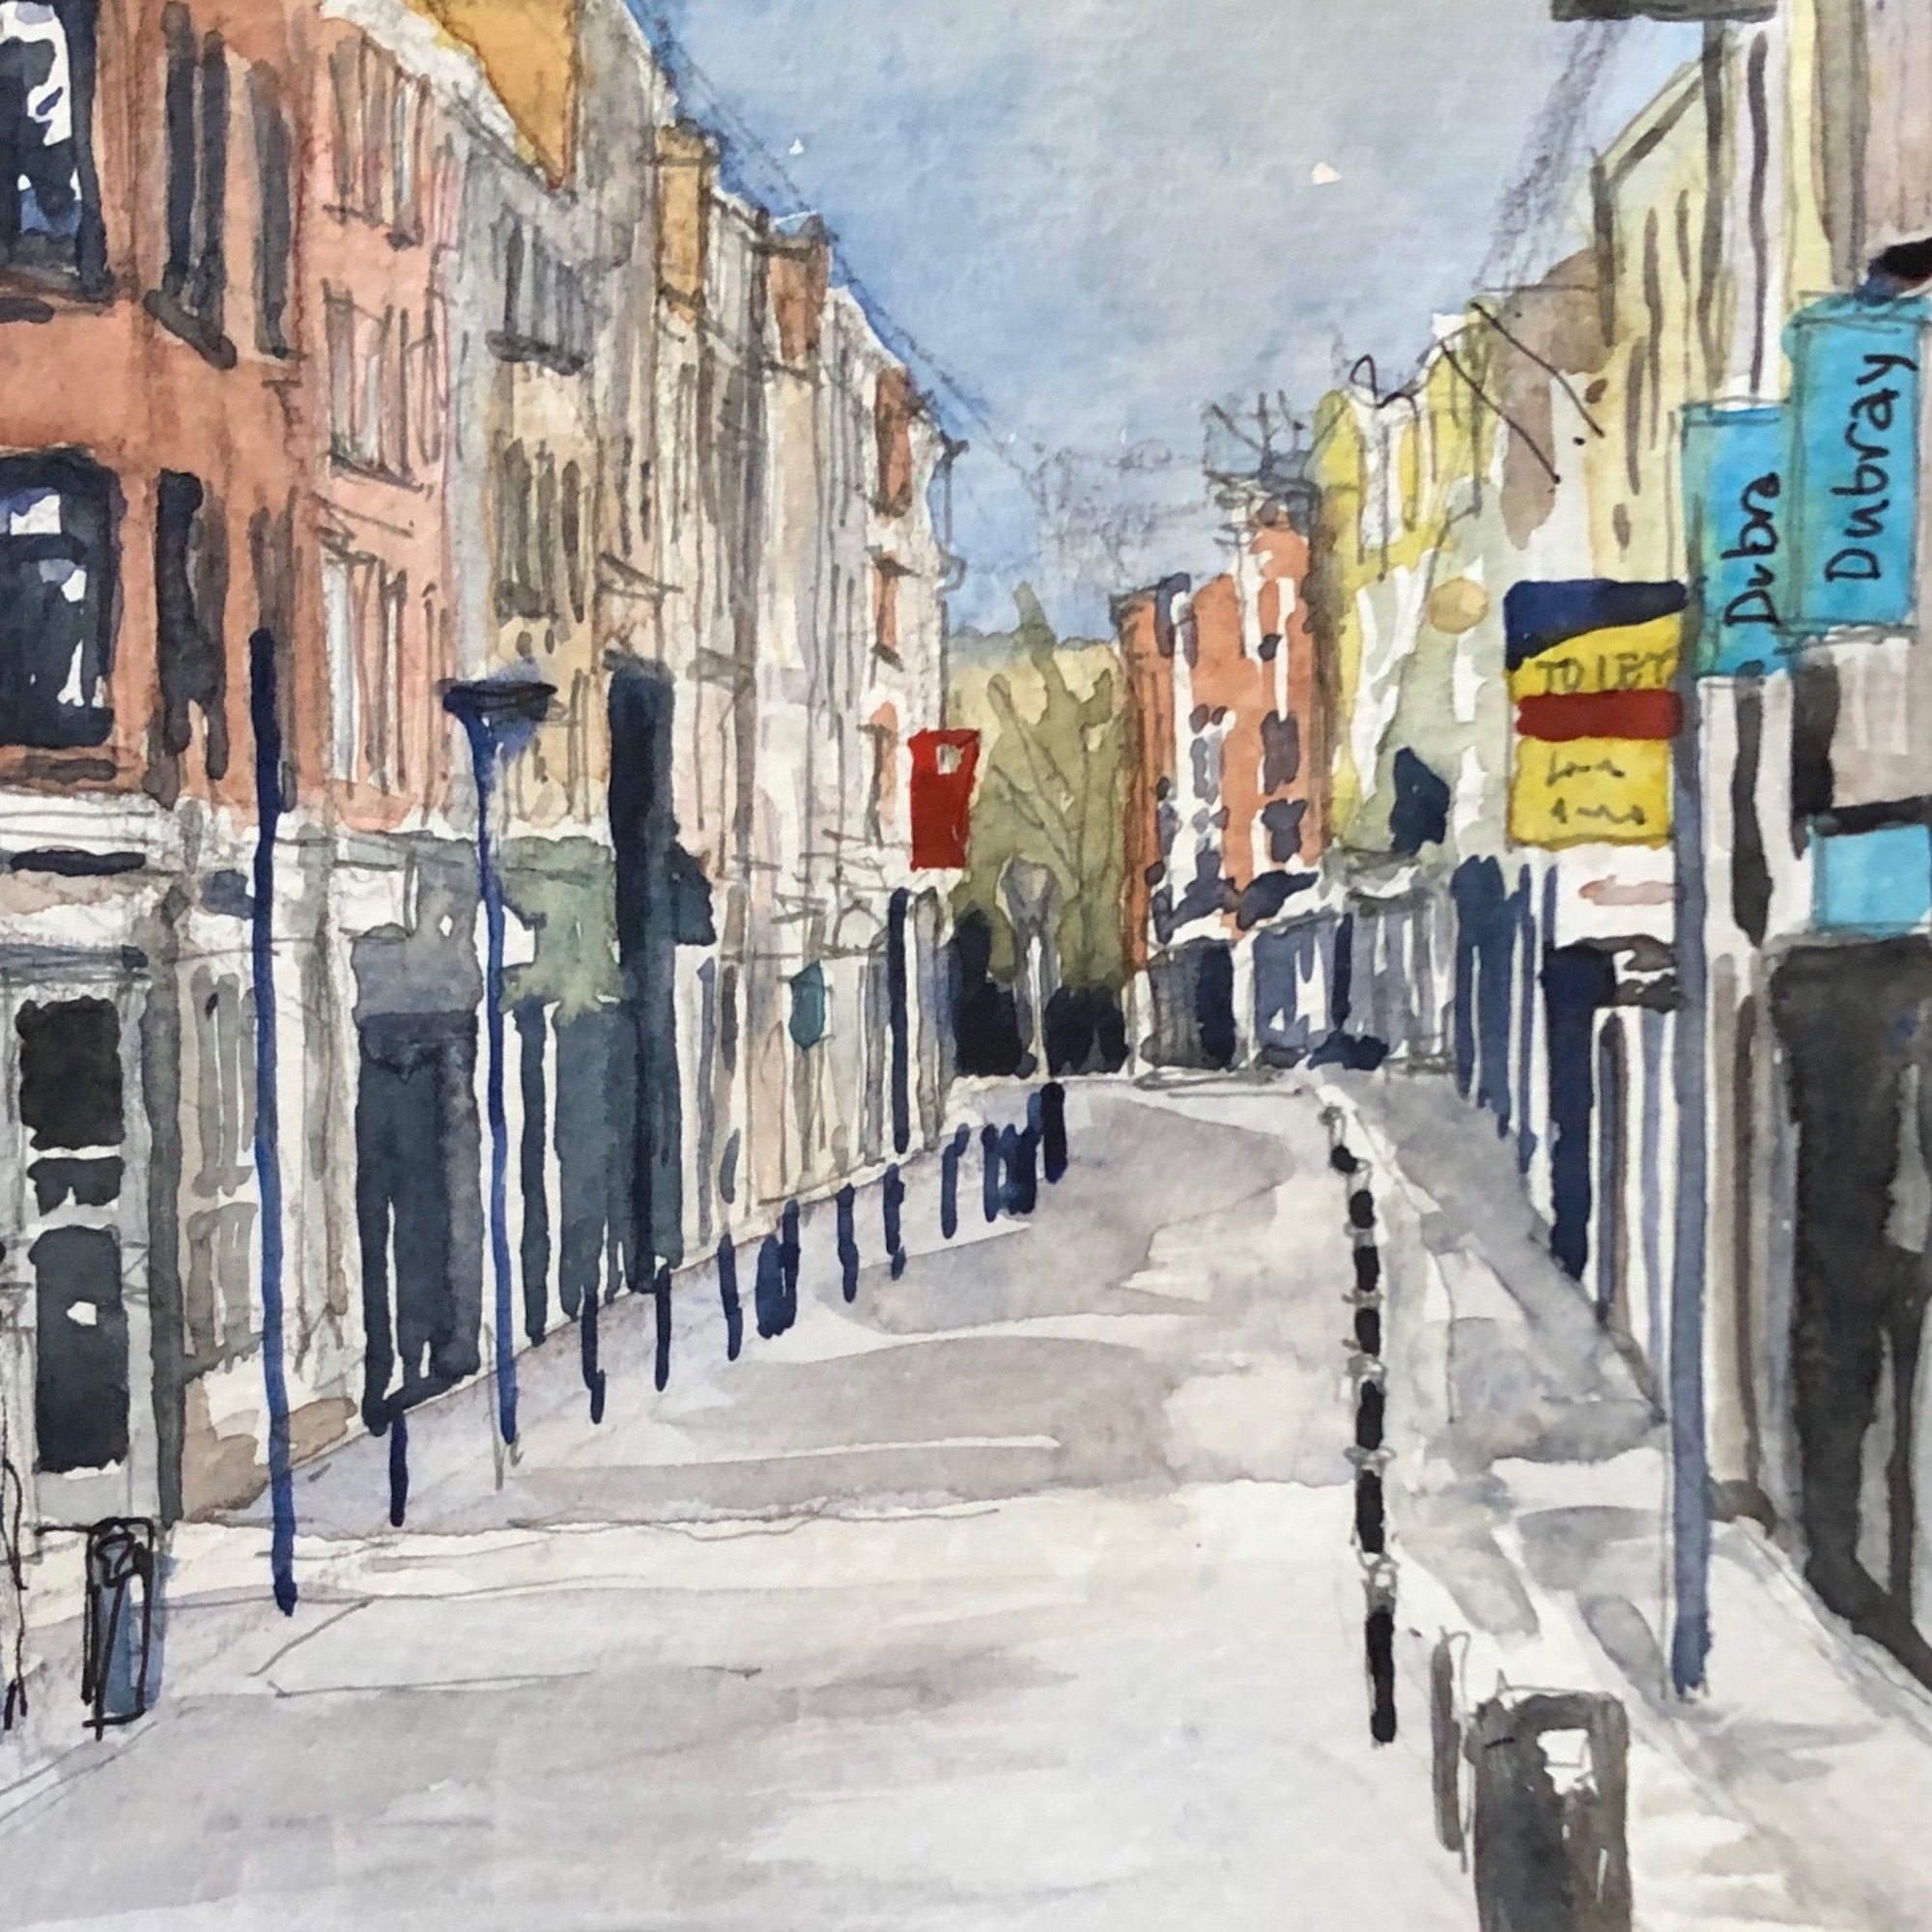 Exhibition at the RIAI: '100 Days of Walking into COVID' by Caitriona Shaffrey MRIAI